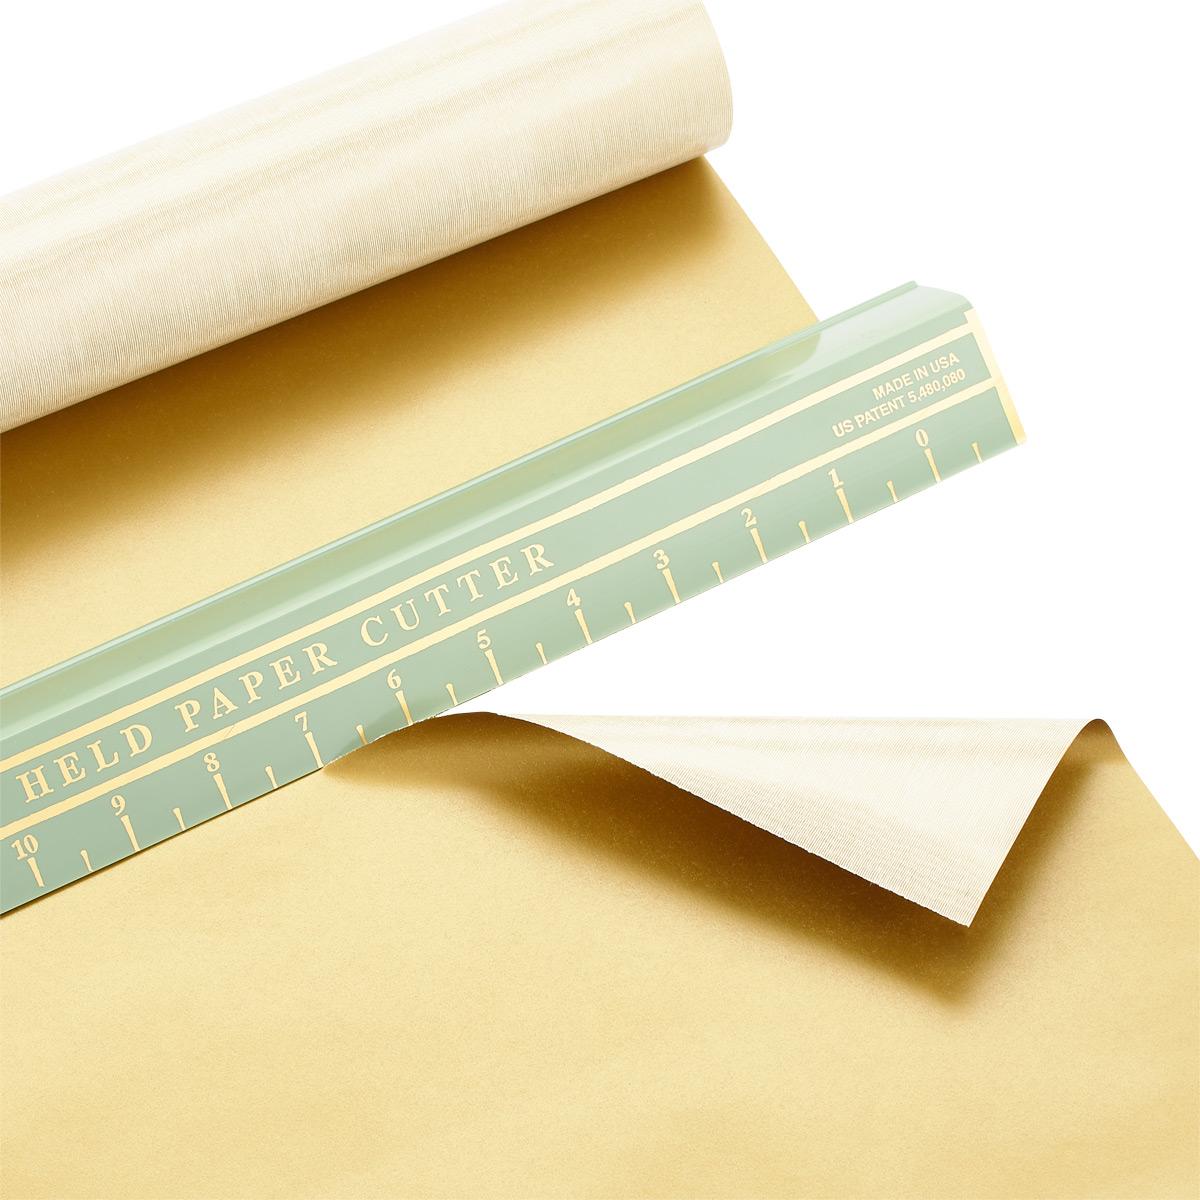 WrapMaster Wrapping Paper Cutter